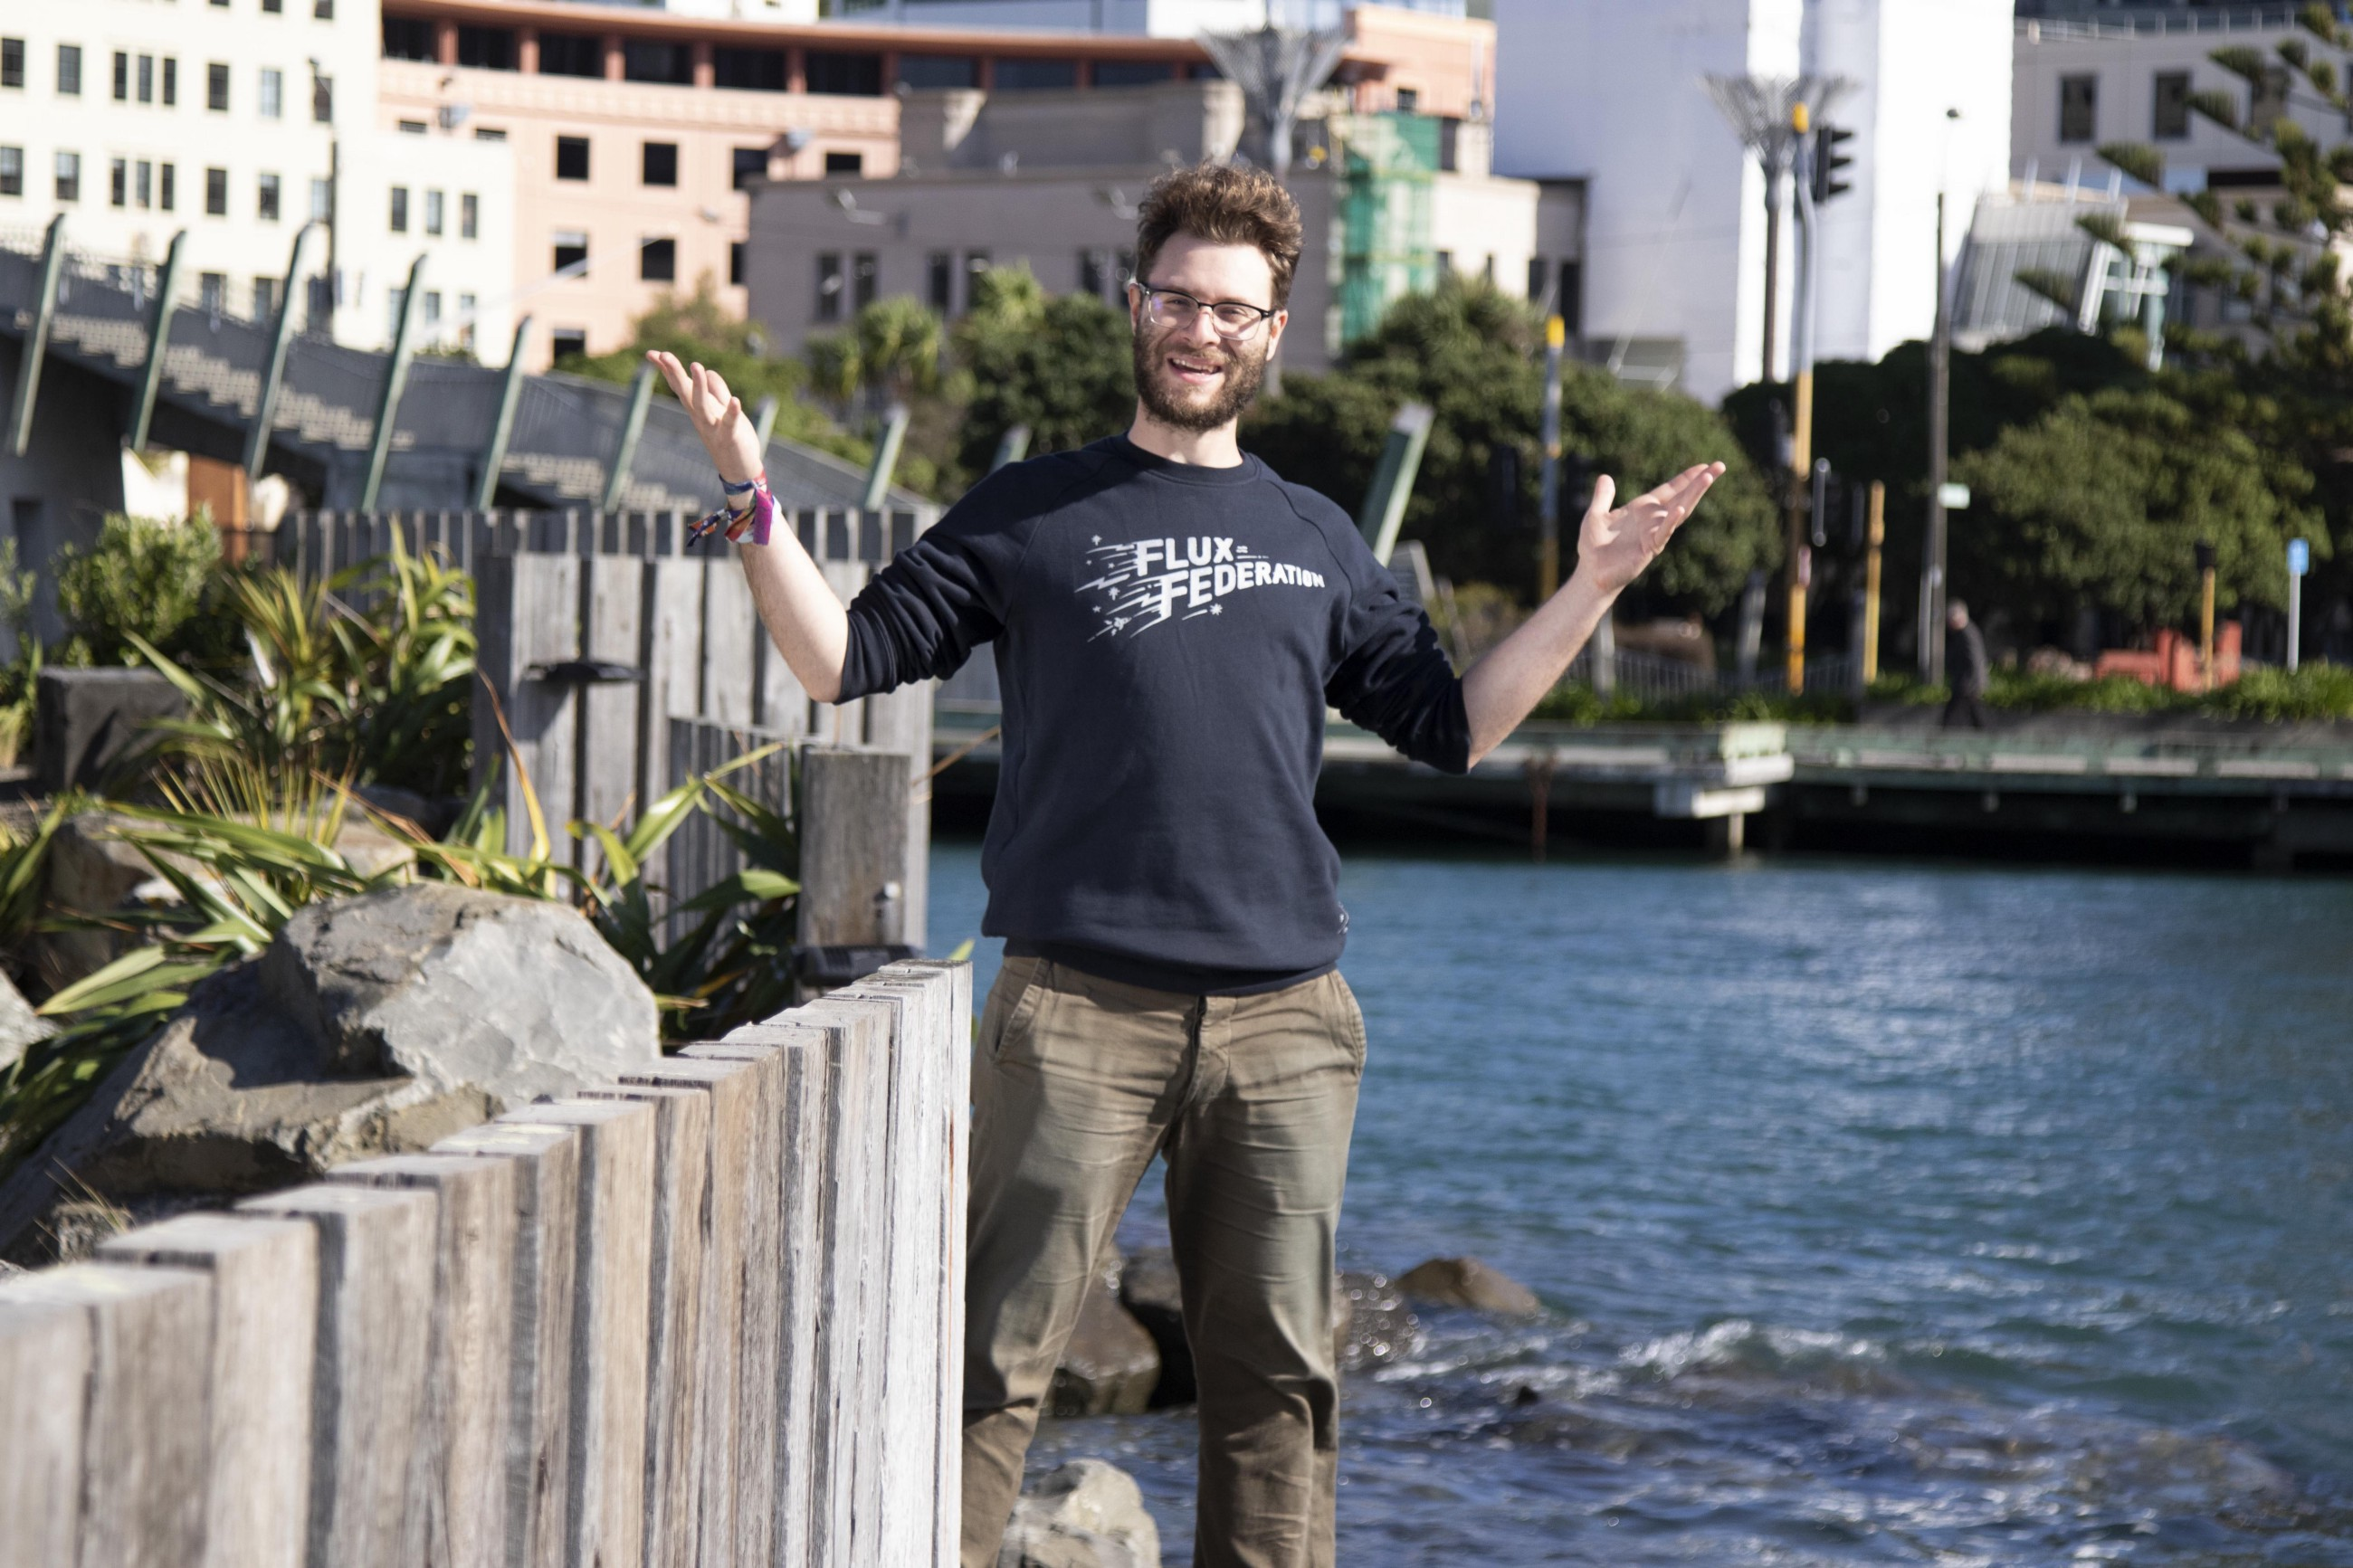 d21c2ae36b2 From crushing grapes to squashing bugs – Humans of Flux Federation ...